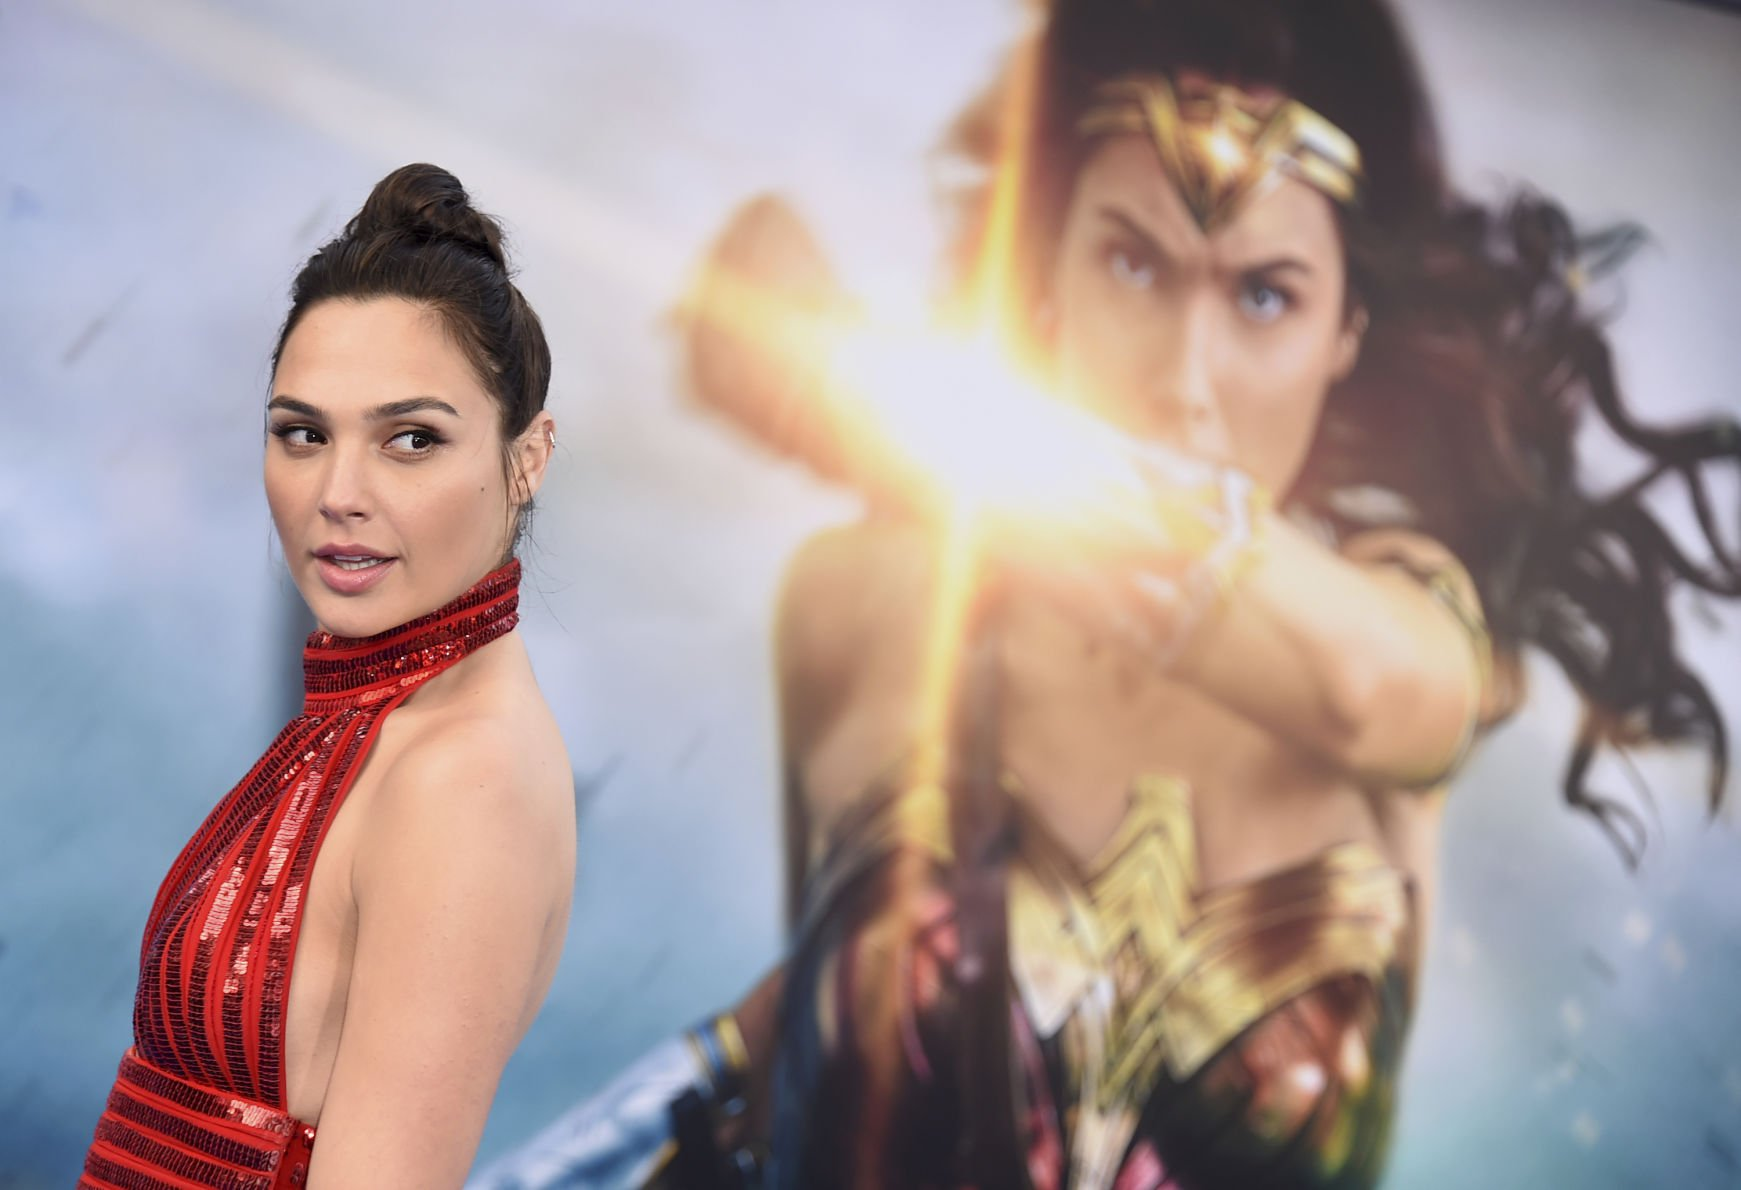 'Wonder Woman 2' movie set for 2019 release date